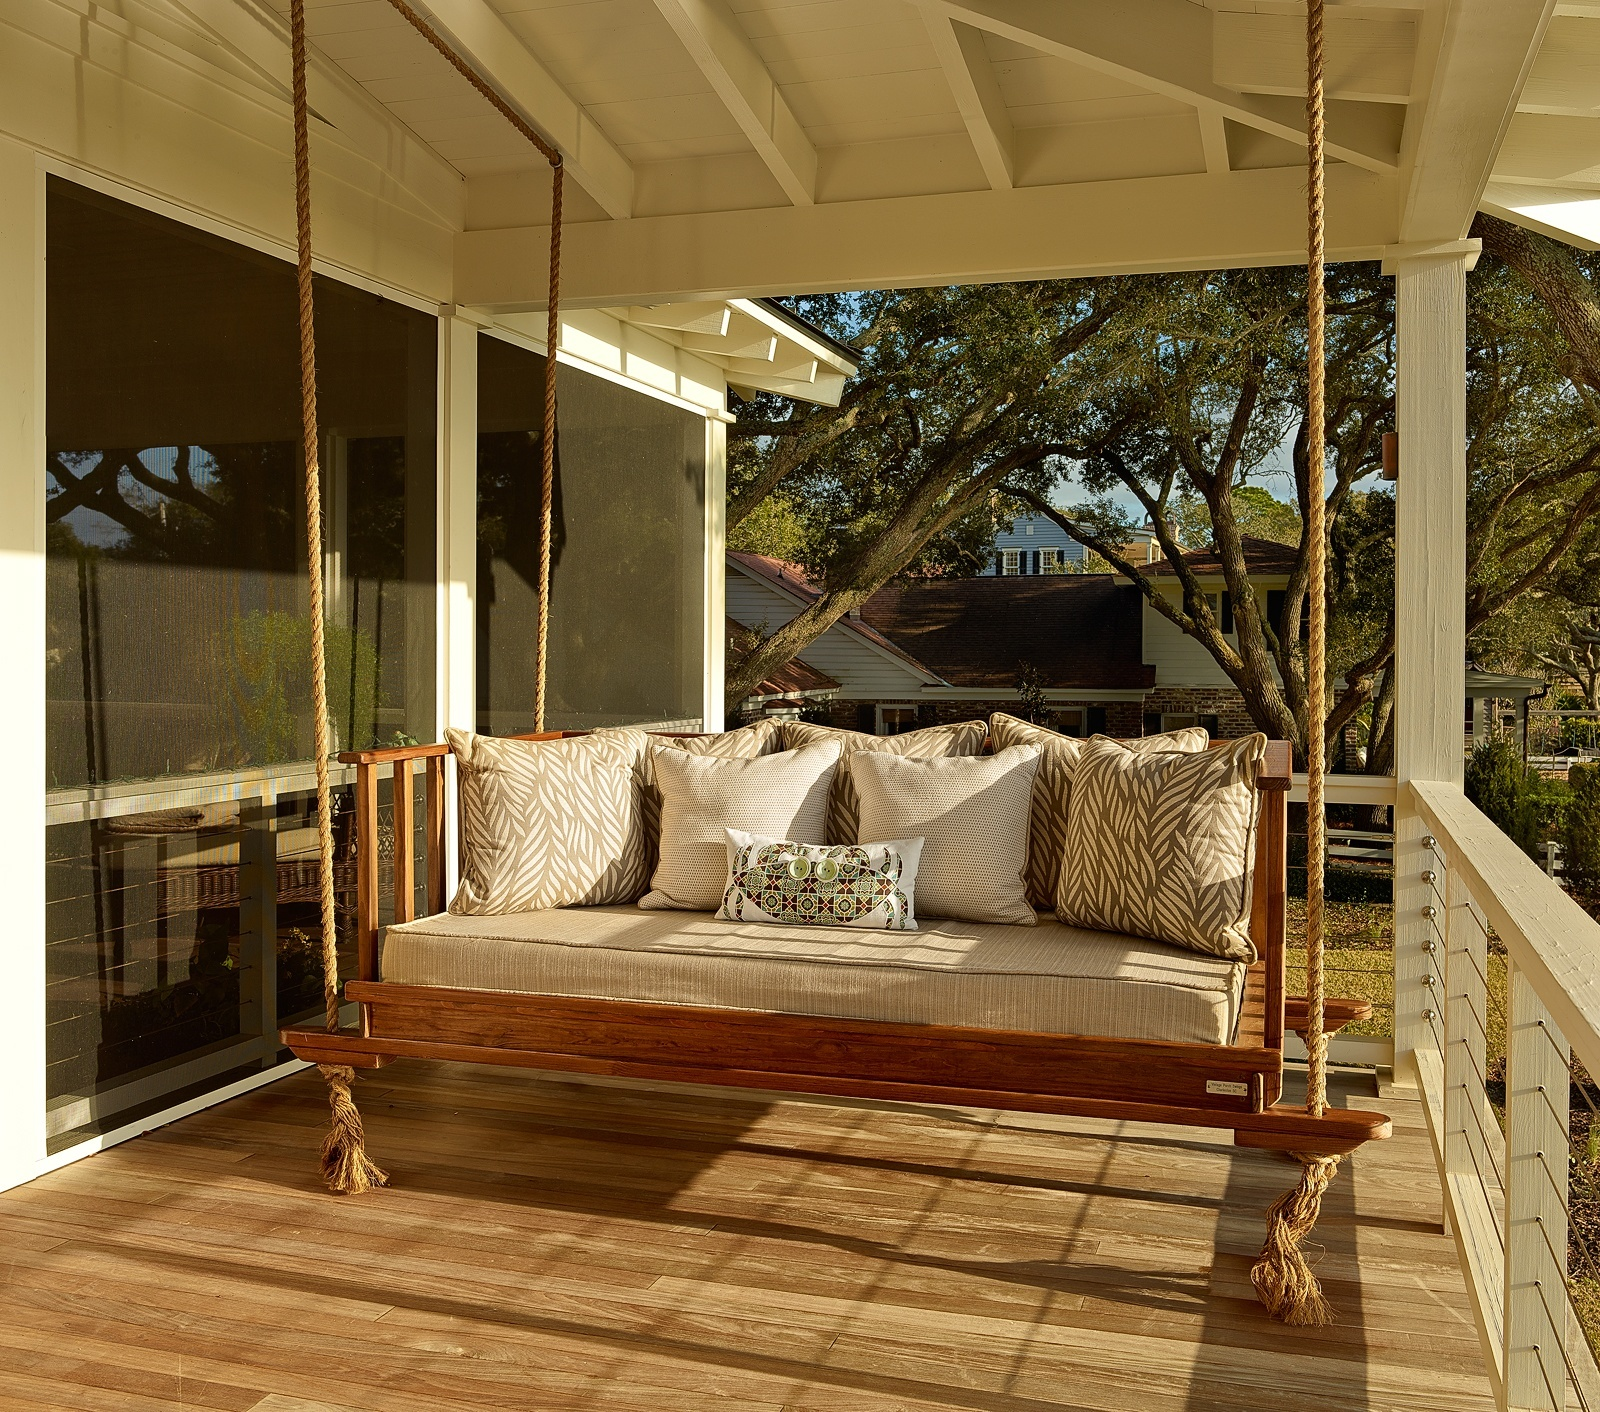 Getting ready for summer enliven your porch with comfy swings for Old porch swing